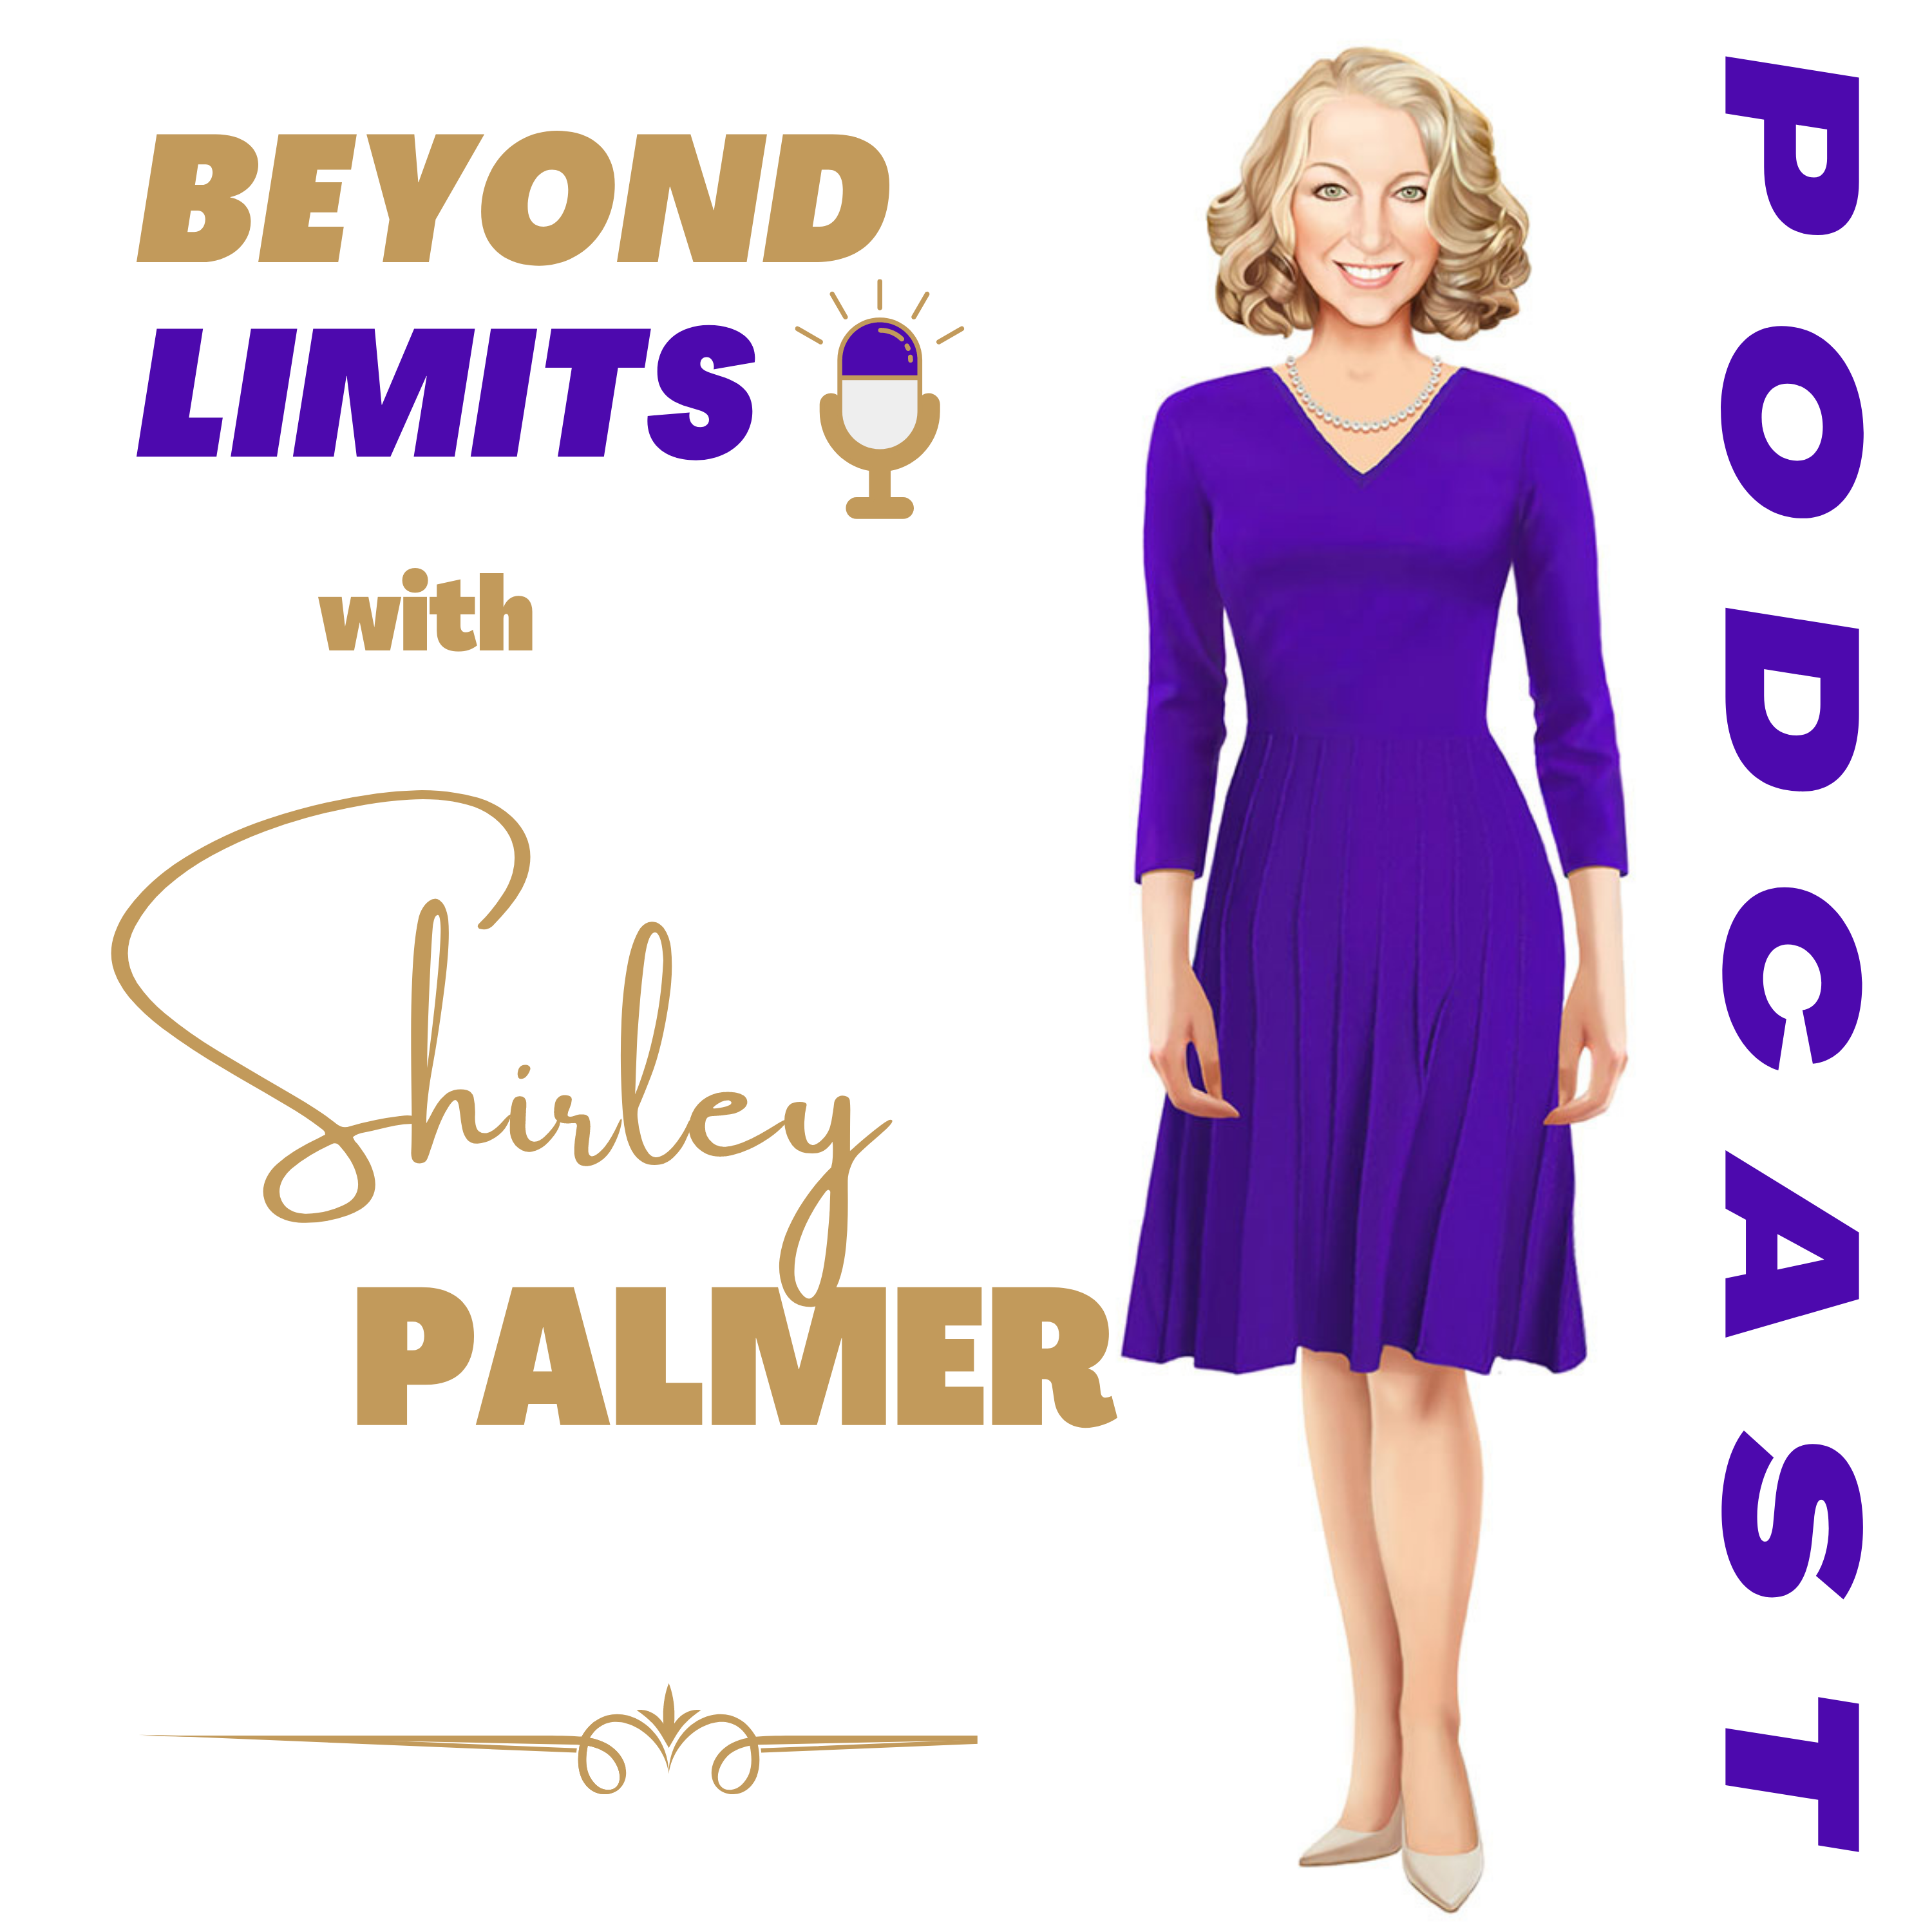 https://shirleypalmer.com/wp-content/uploads/2021/07/Podcast-cover.png